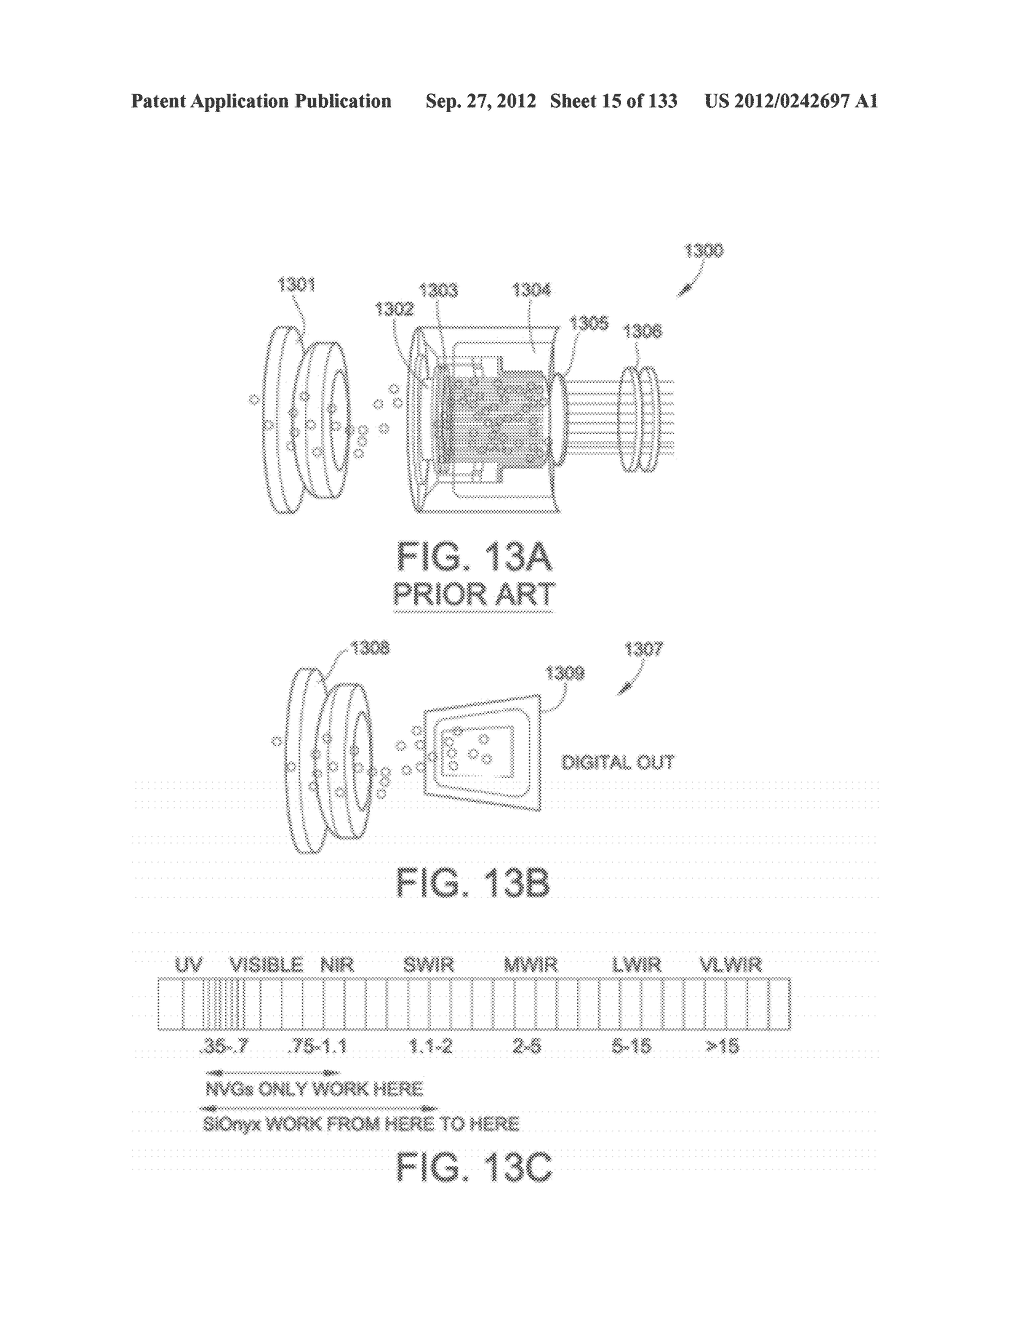 SEE-THROUGH NEAR-EYE DISPLAY GLASSES WITH THE OPTICAL ASSEMBLY INCLUDING     ABSORPTIVE POLARIZERS OR ANTI-REFLECTIVE COATINGS TO REDUCE STRAY LIGHT - diagram, schematic, and image 16